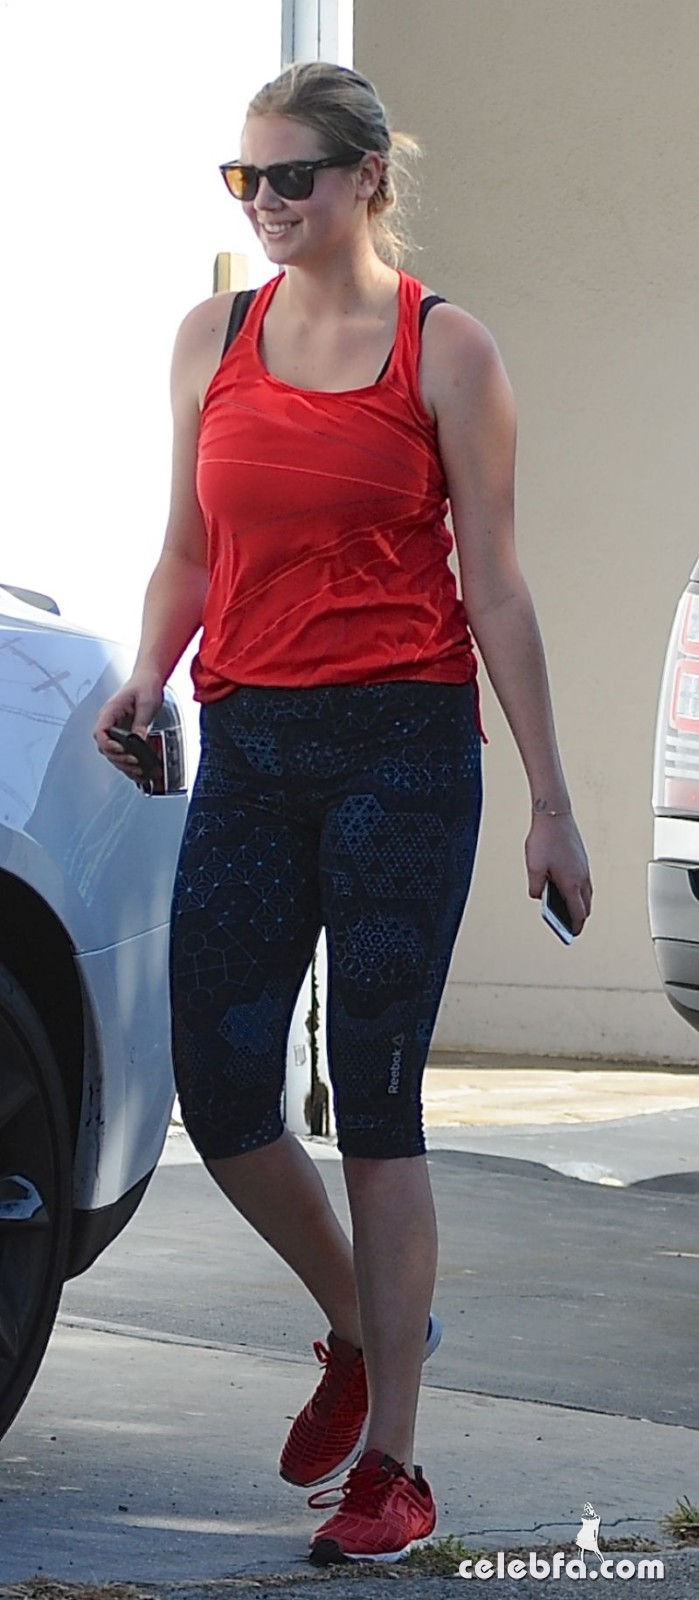 kate-upton-arrives-at-a-gym-in-west-hollywood (2)